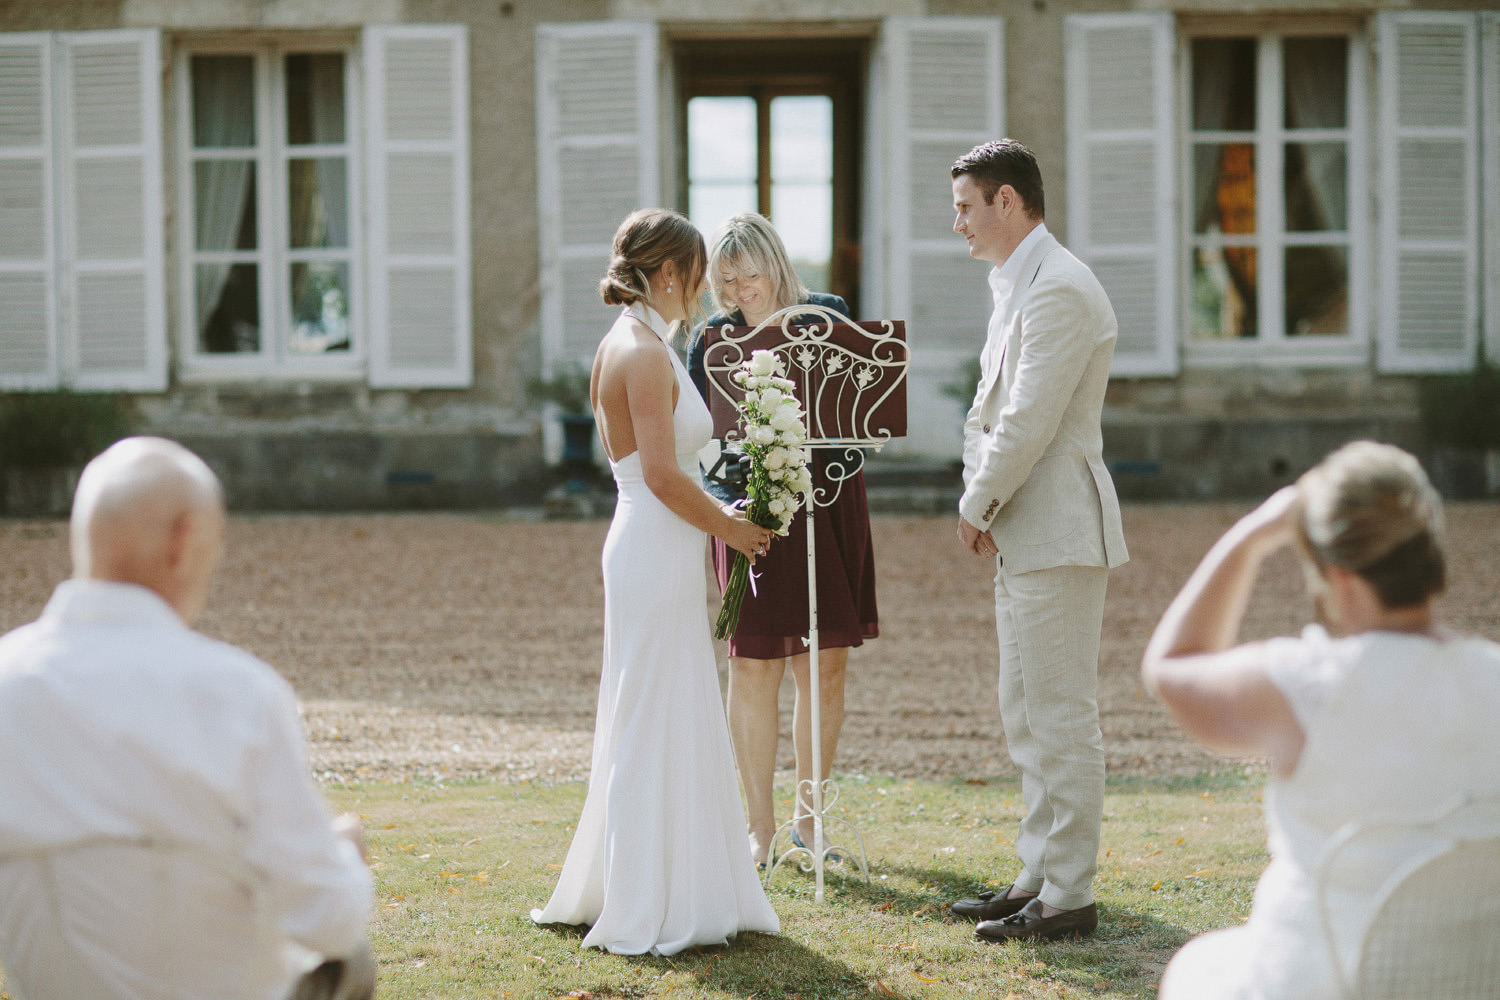 outdoor wedding ceremony at French chateau near Paris